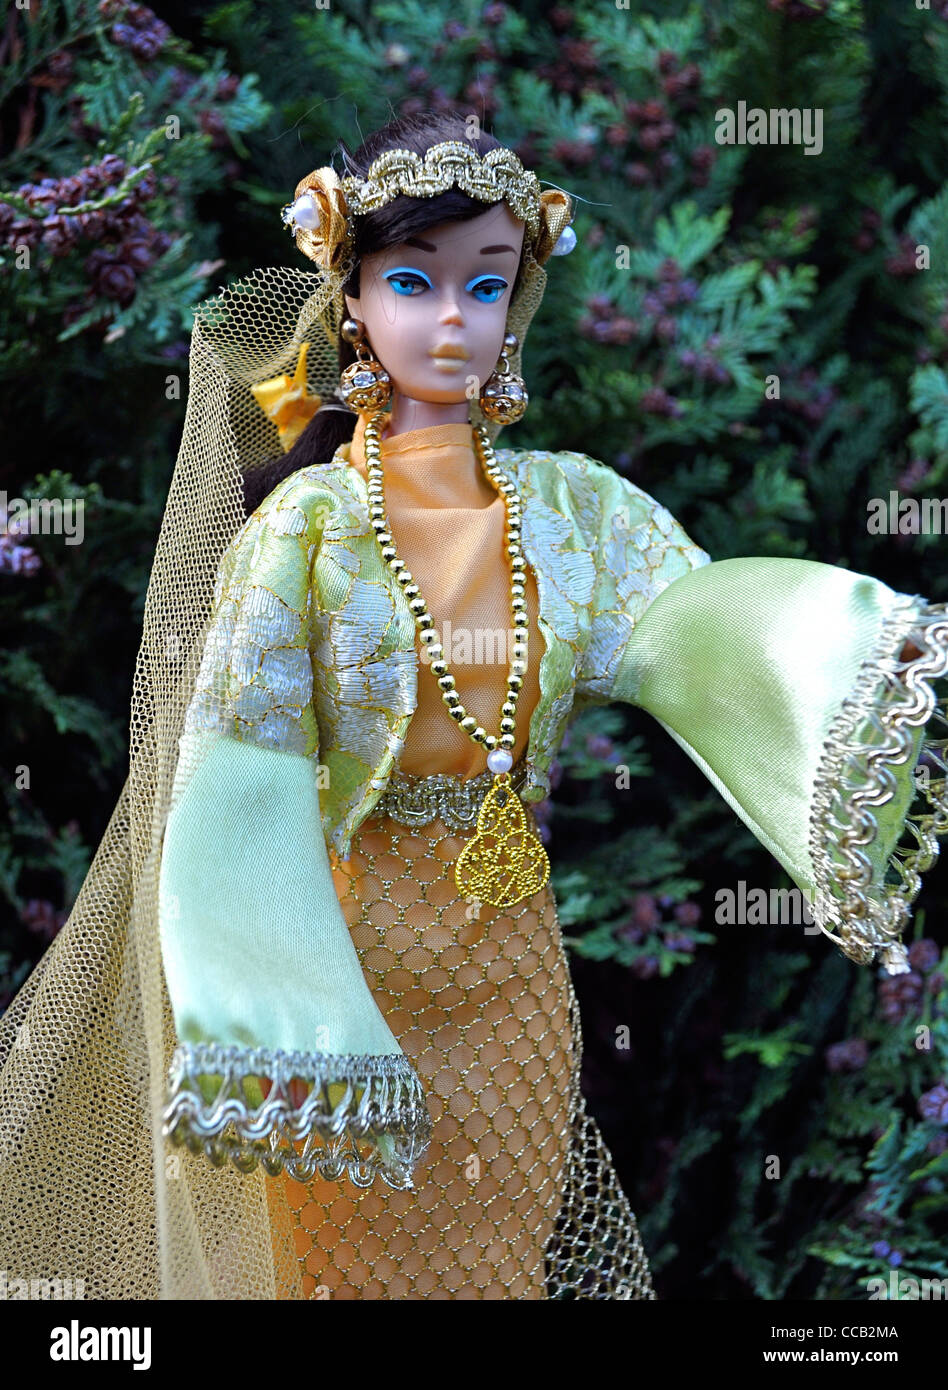 Traditional syrian dress stock photos traditional syrian dress vintage 1963 brunette swirl ponytail barbie doll syria costume syrian national costume traditional middle publicscrutiny Image collections